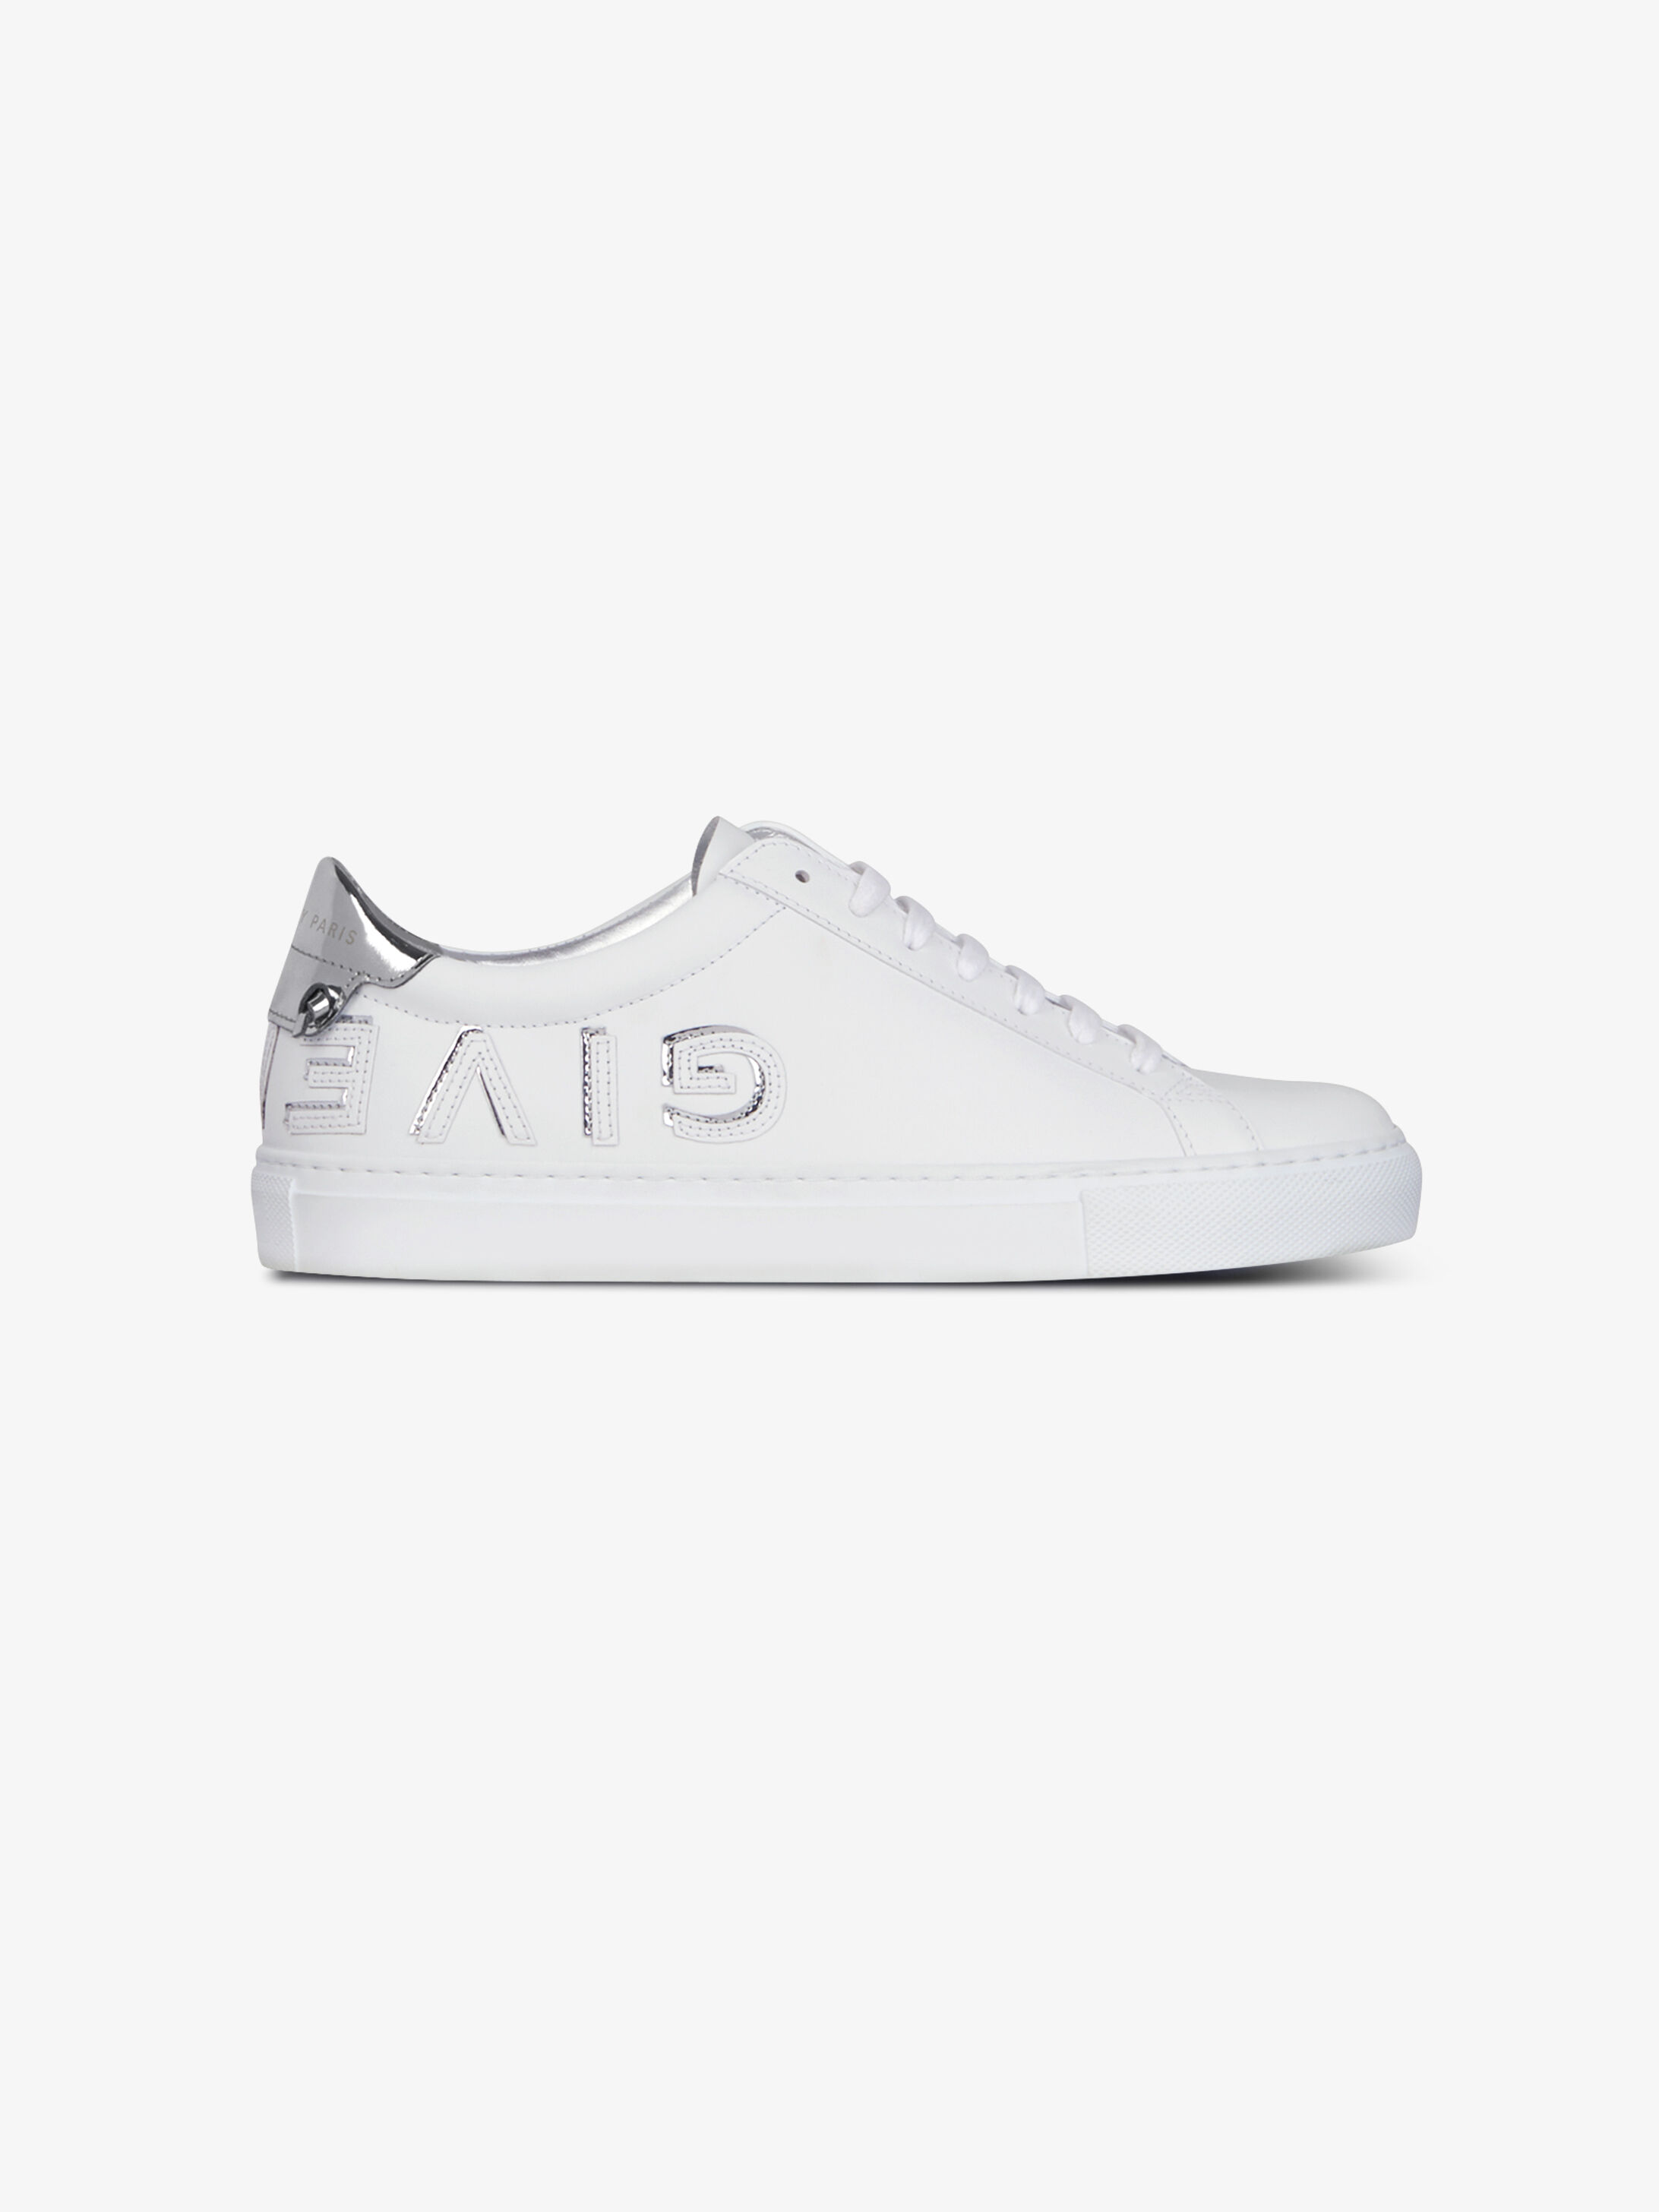 b79bb22cba09 Women s Sneakers collection by Givenchy.